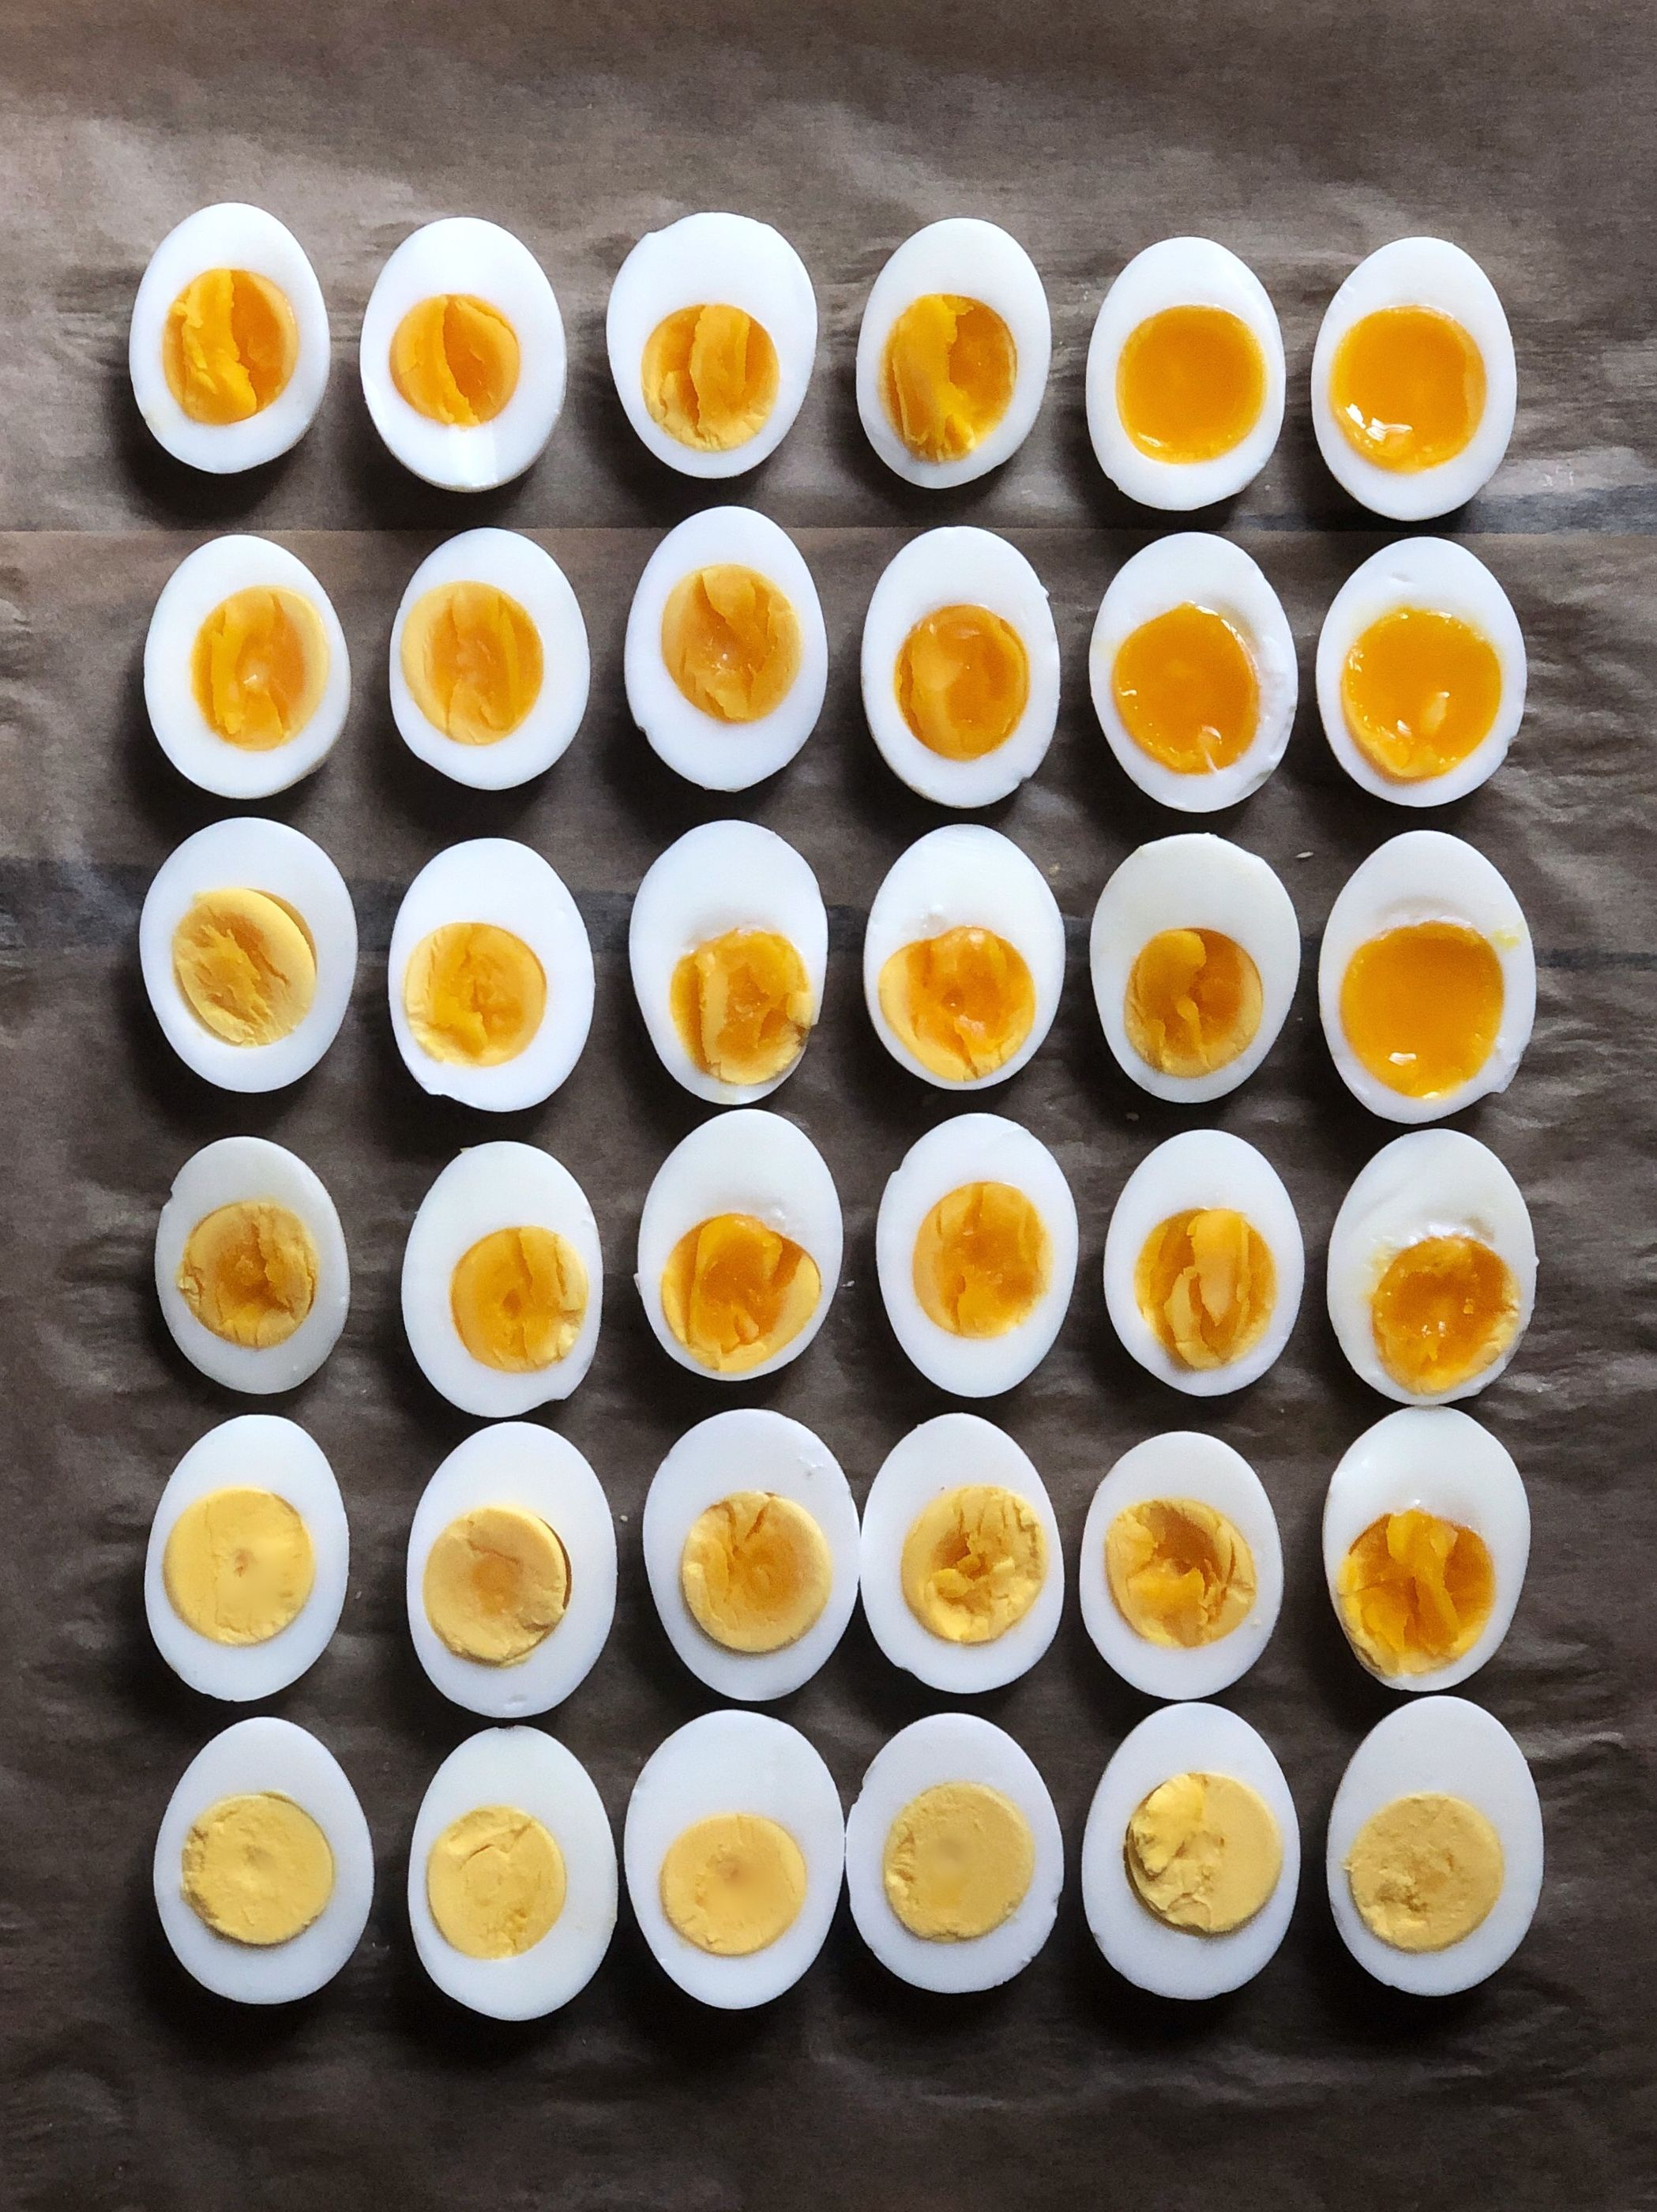 How to Make Perfect Hard-Boiled Eggs Every Time, According to Waaayyy Too Many Tests